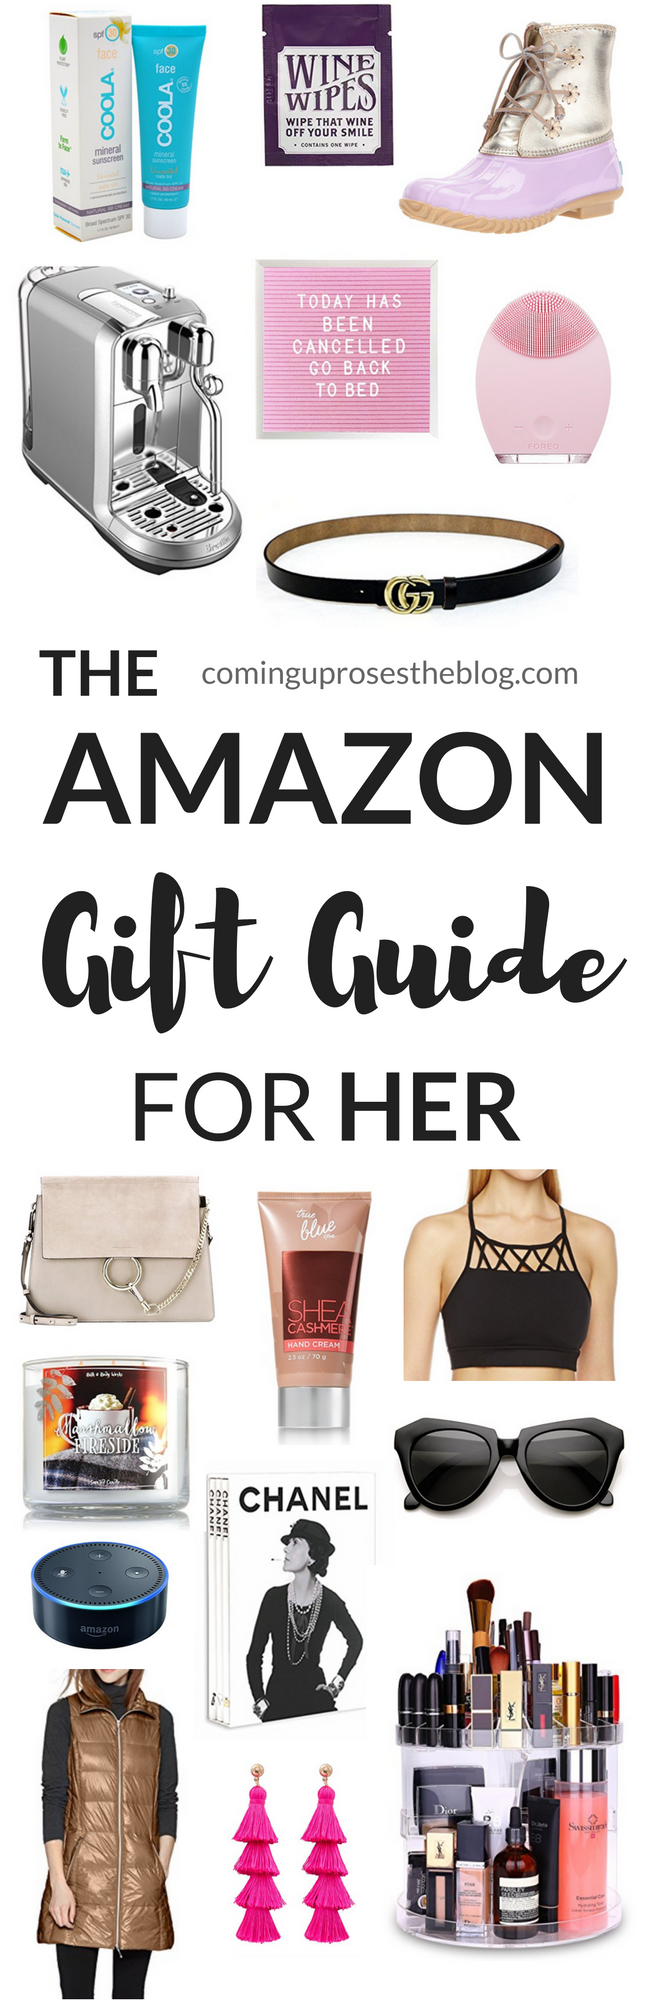 Amazon Gift Guide for Her Best amazon gifts, Amazon